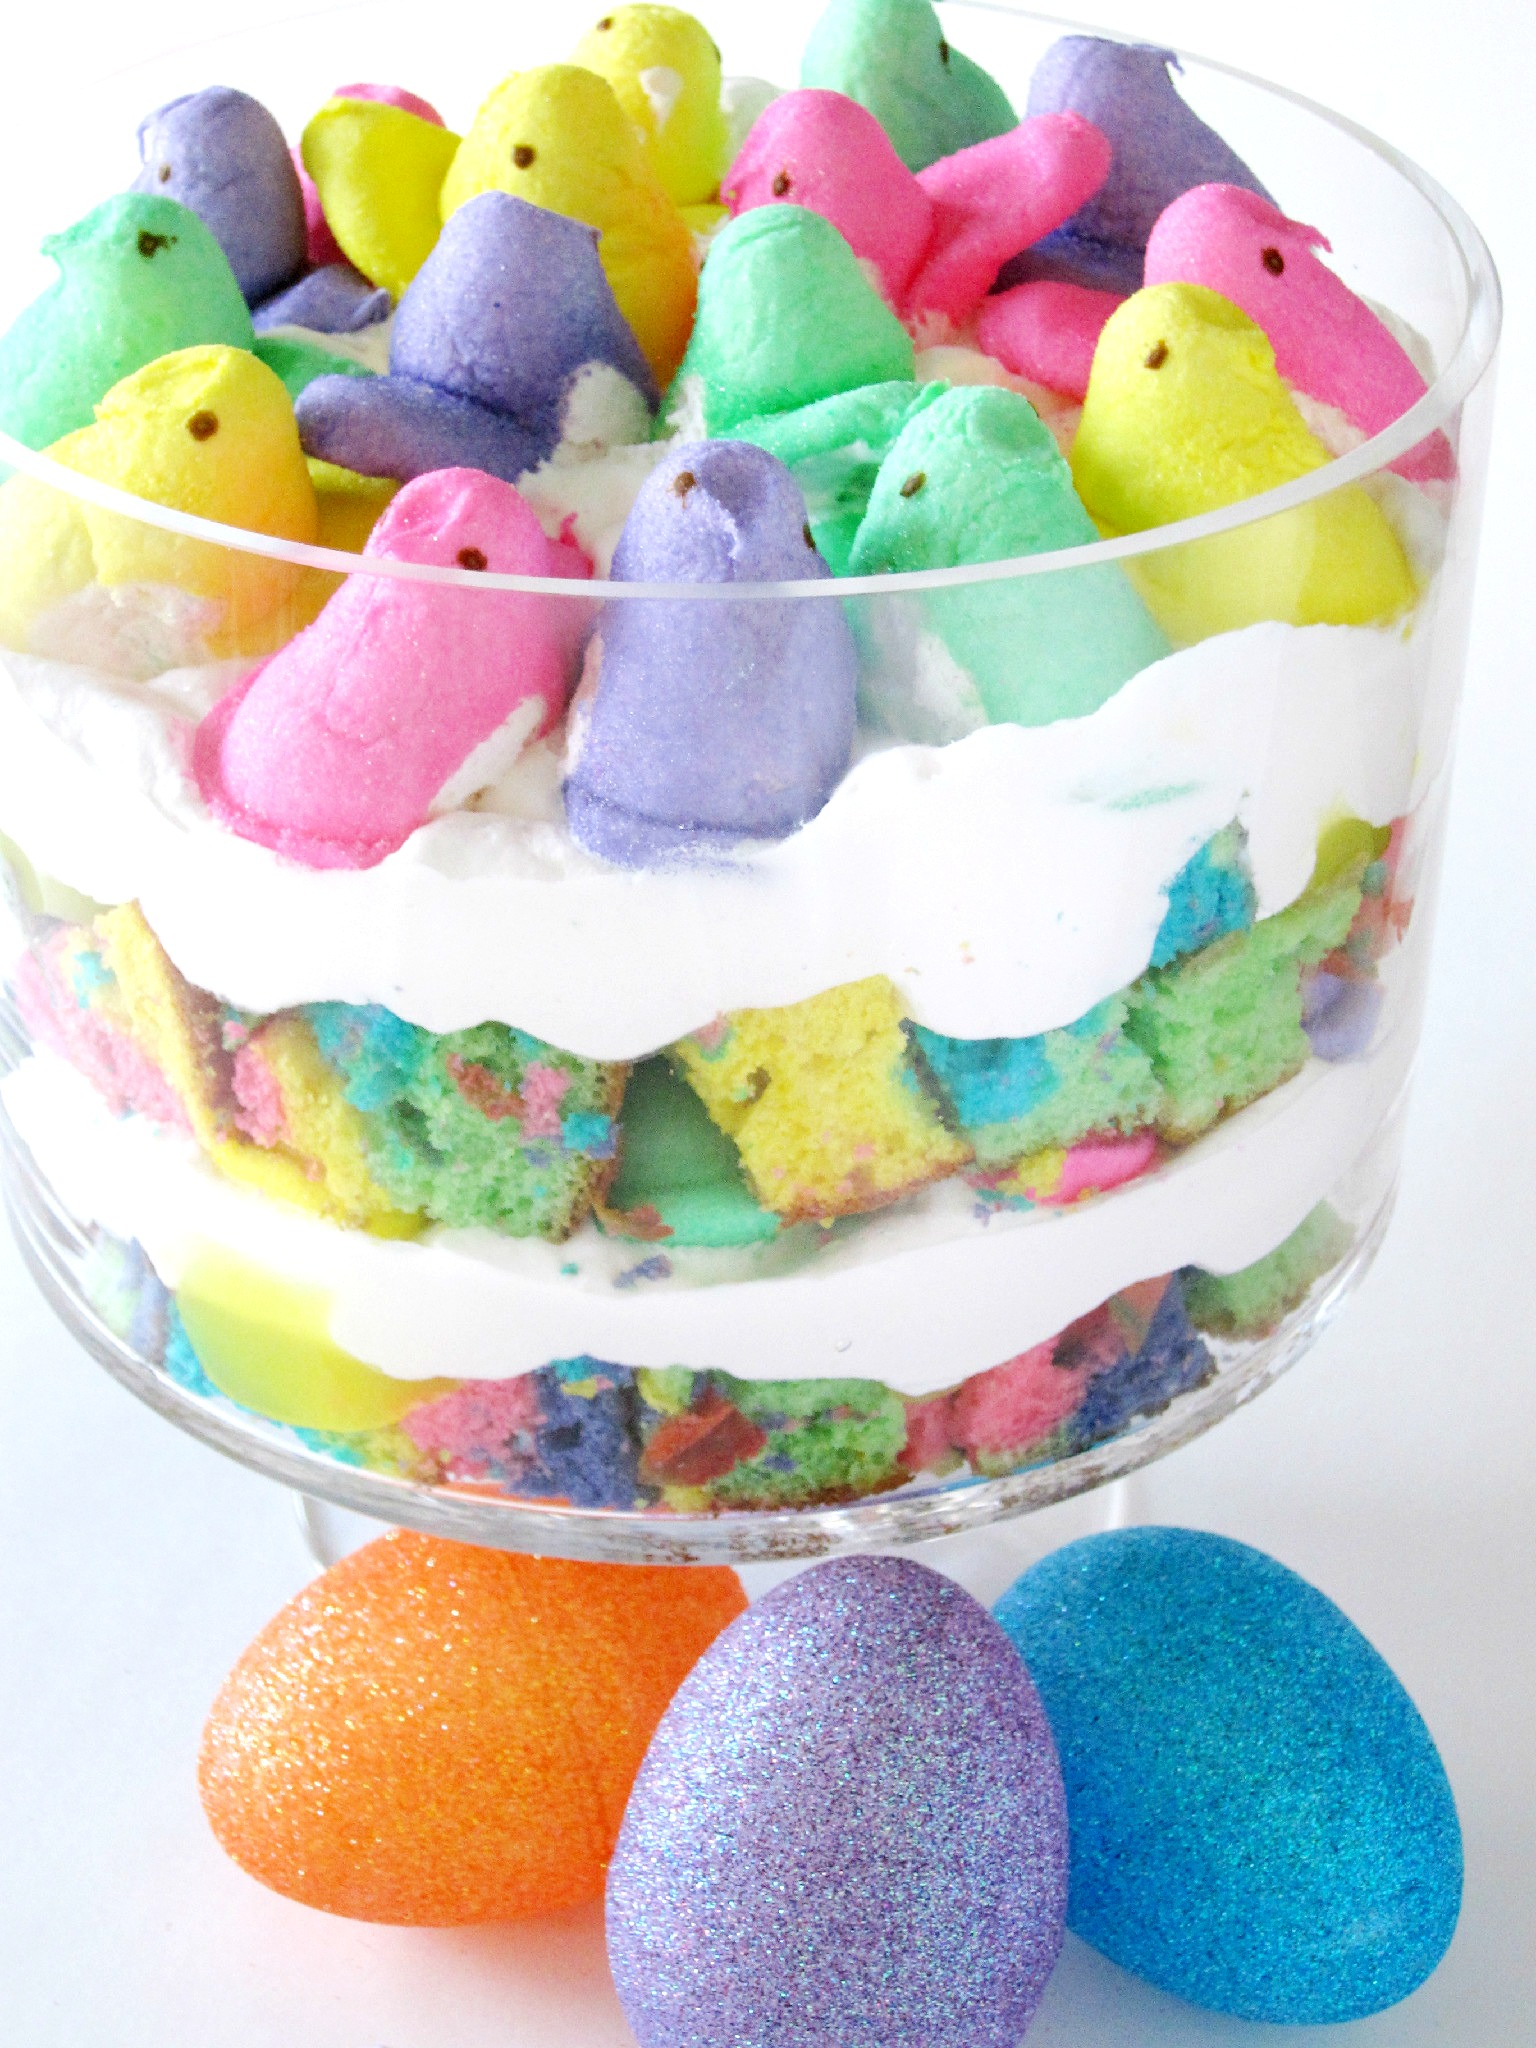 PEEPS Glorious PEEPS! | Shake Bake and Party